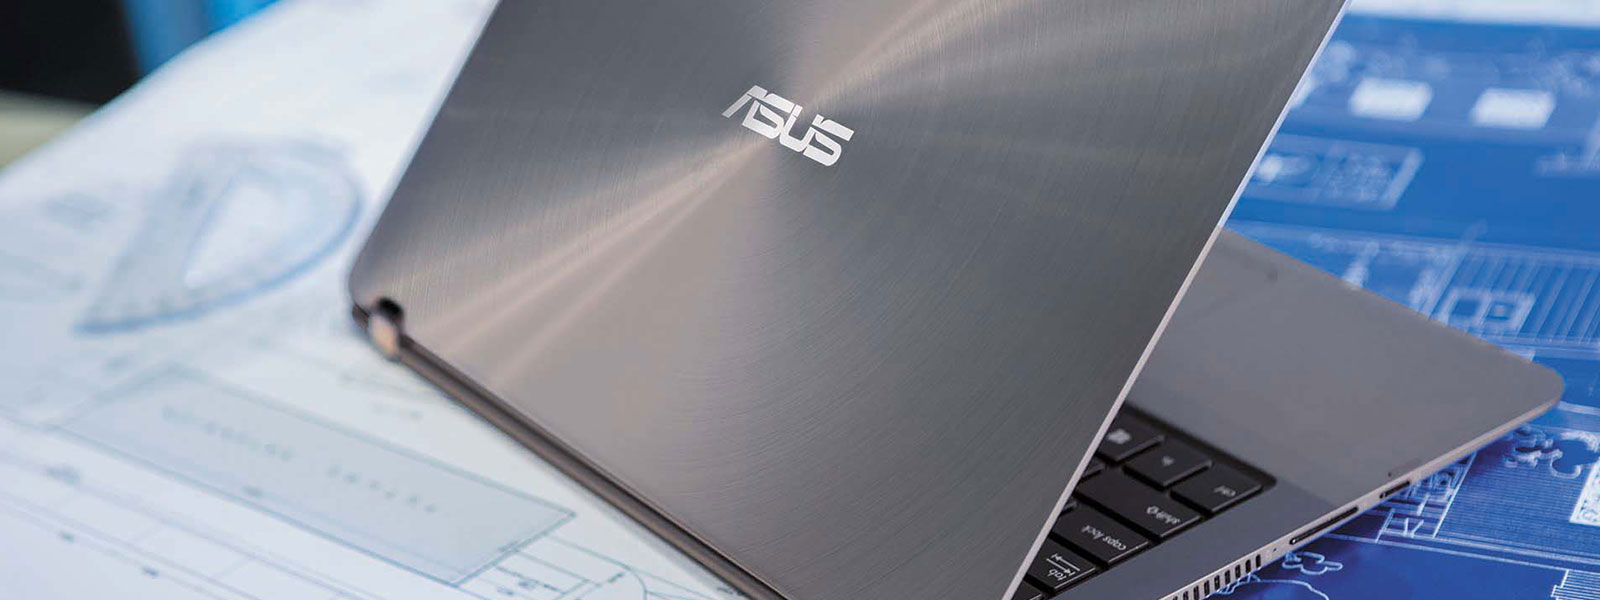 The ASUS Zenbook Flip UX360UA on a desk.